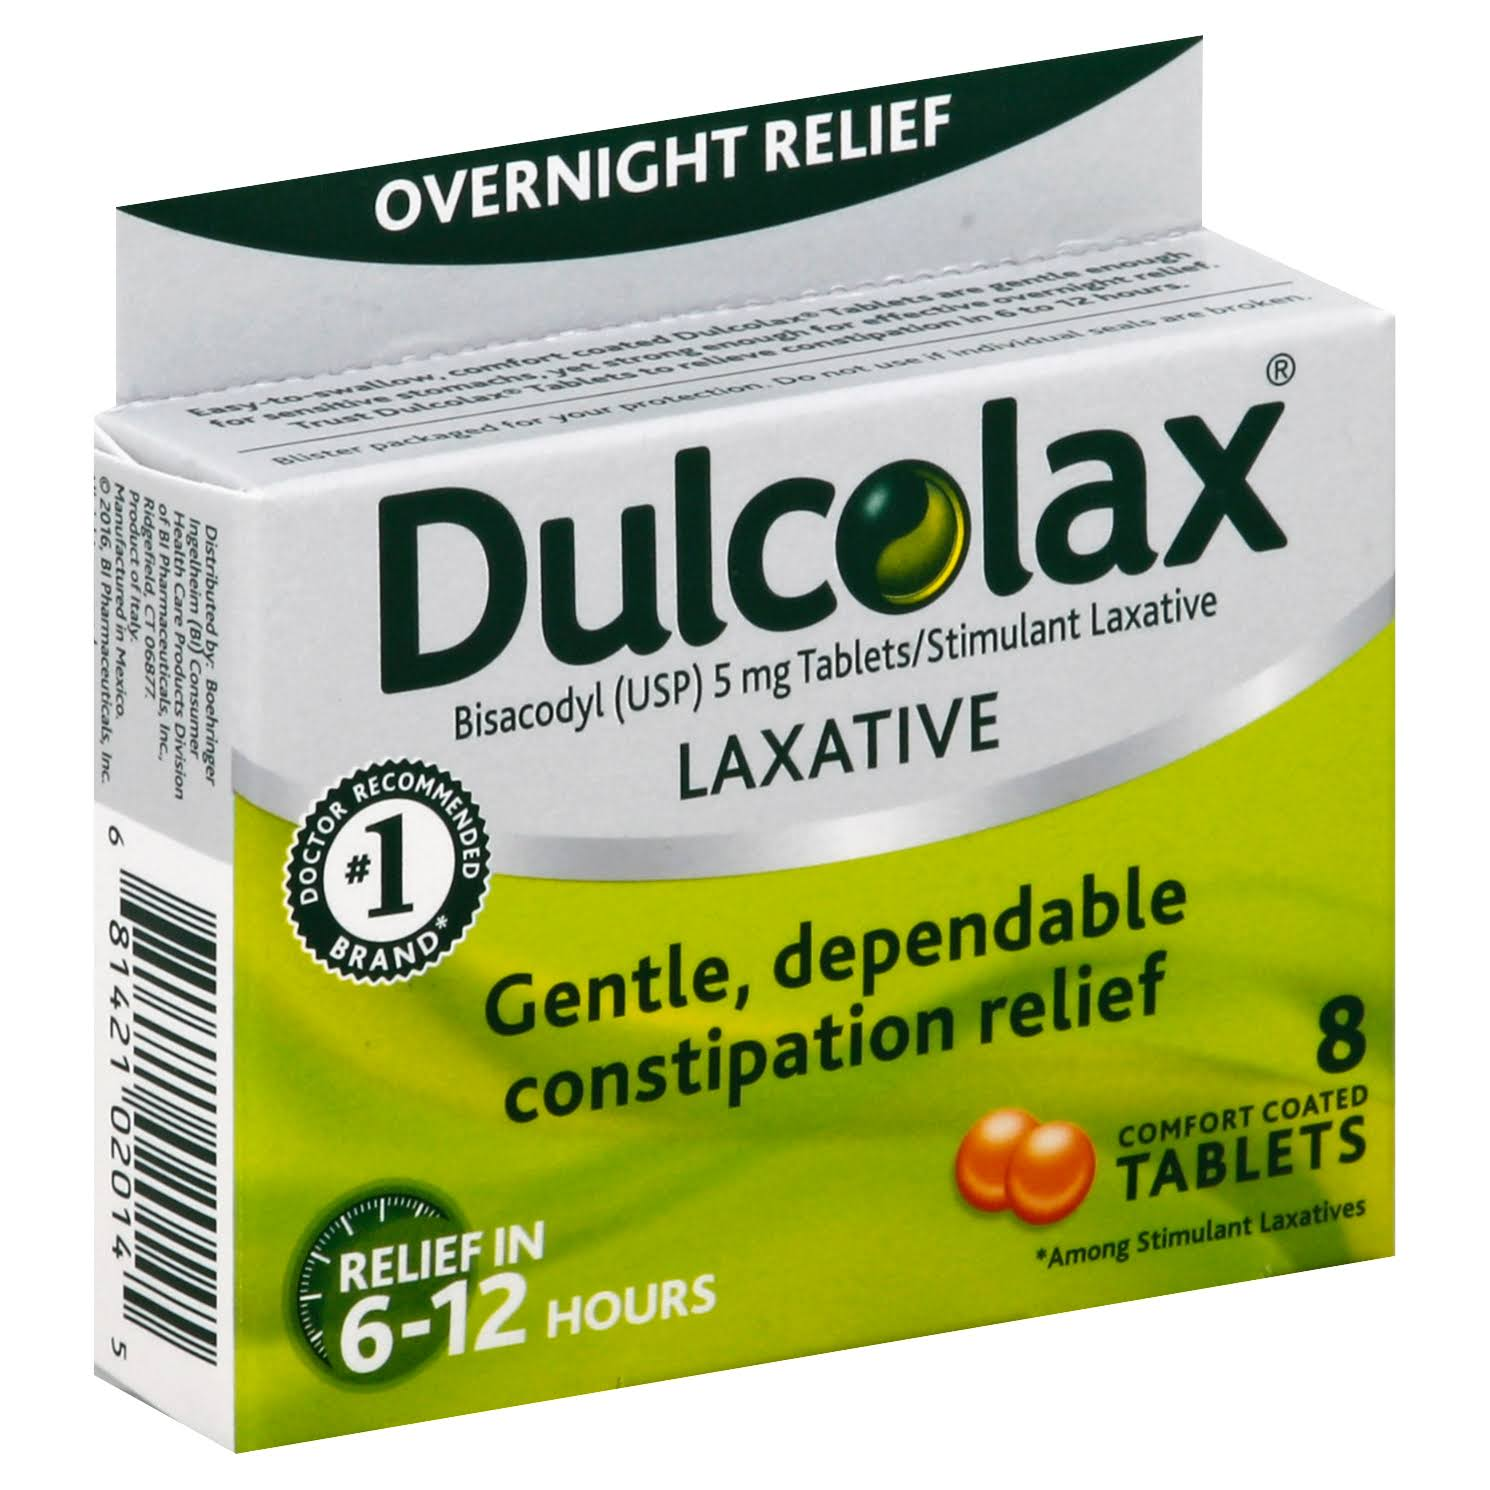 Dulcolax Overnight Relief Laxative Comfort Coated Tablets - 8 Pack